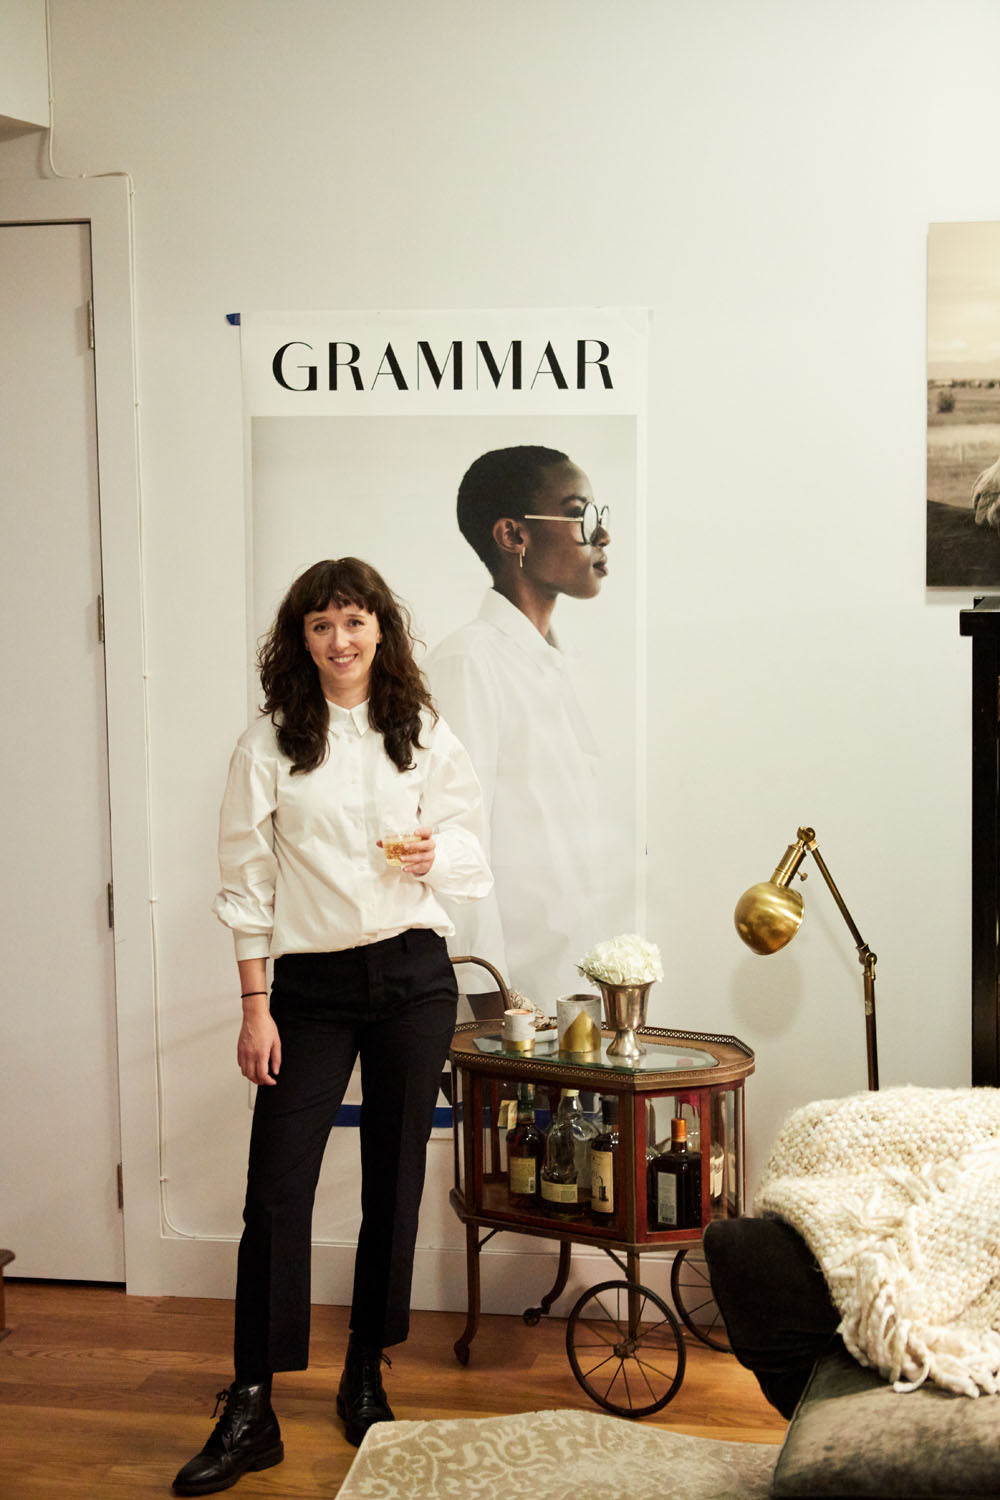 Althea Simons, Founder & CEO, GRAMMAR